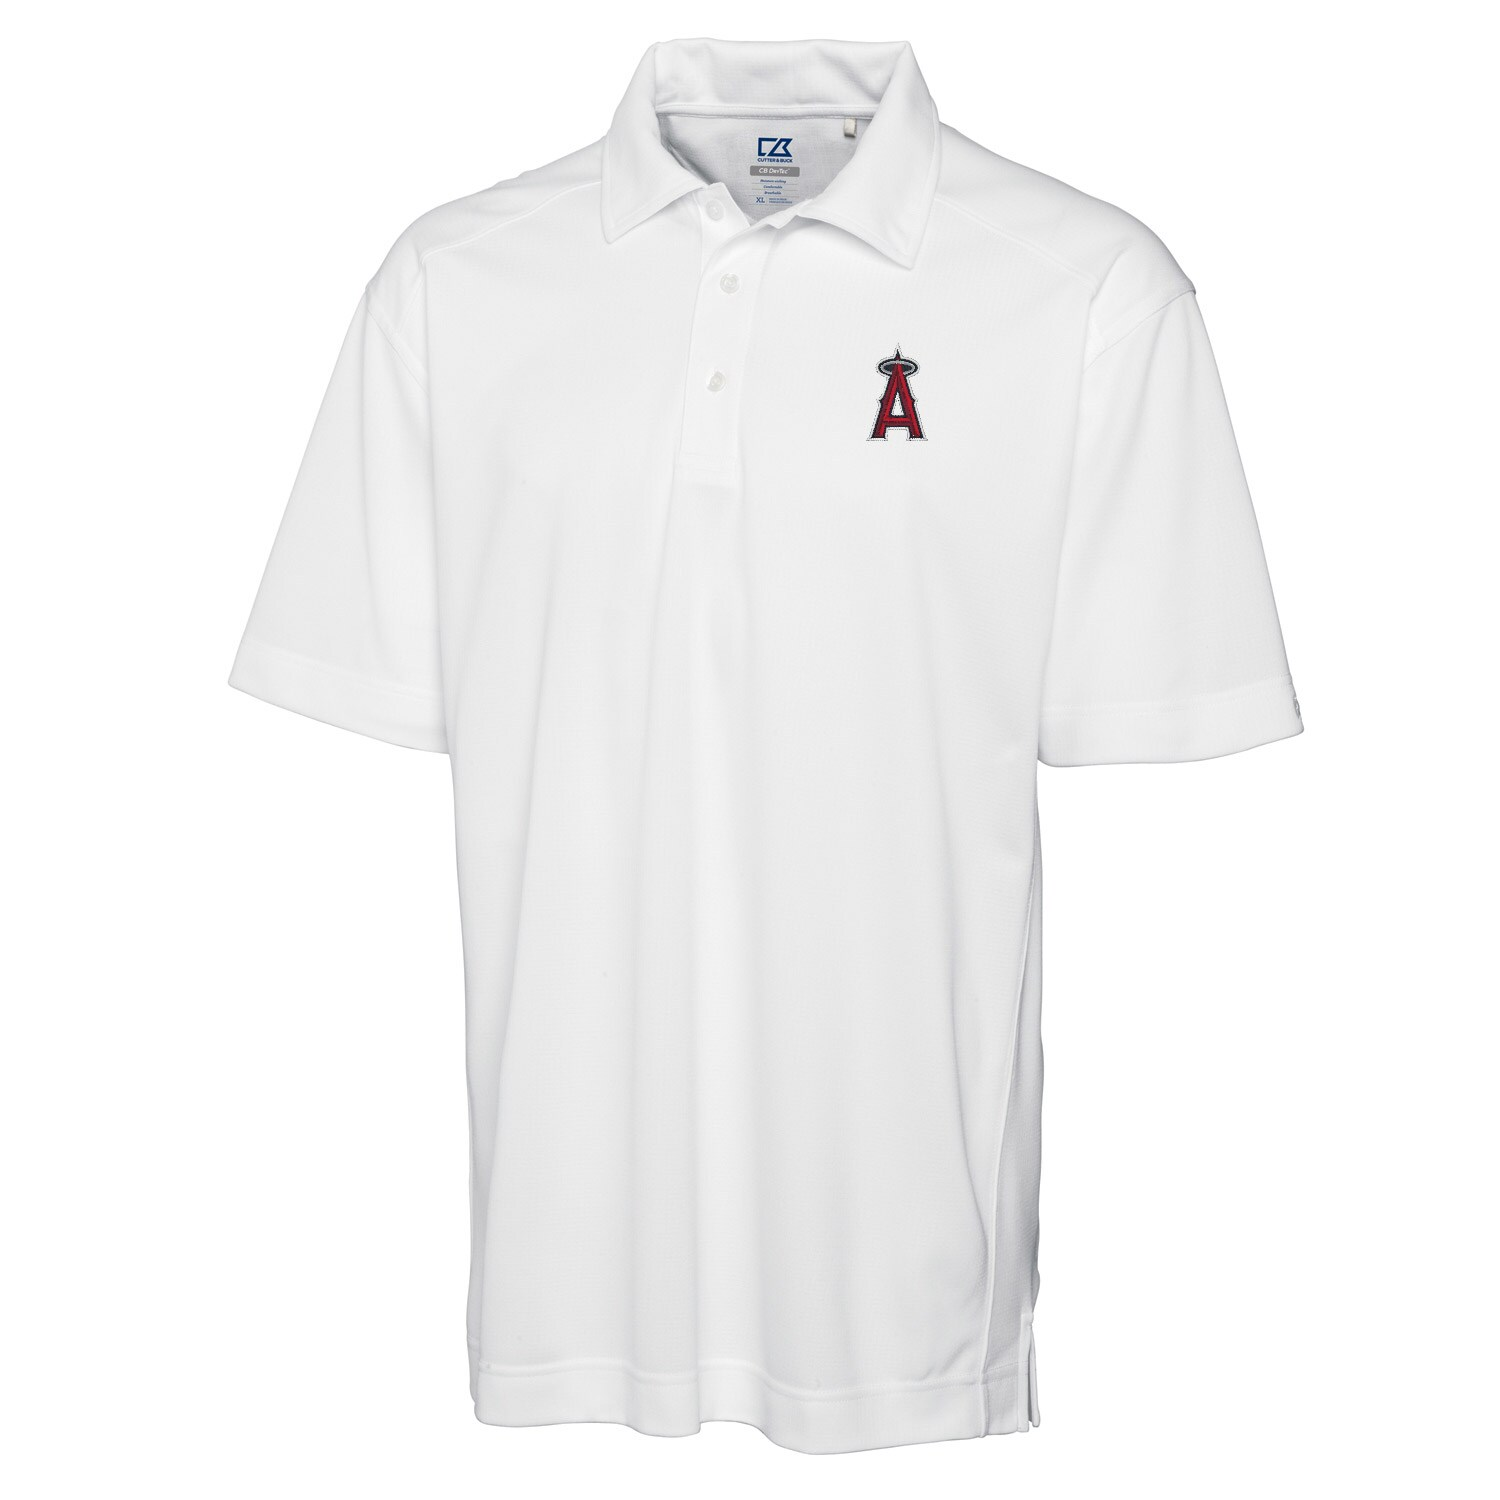 Los Angeles Angels Cutter & Buck Big & Tall DryTec Genre Polo - White